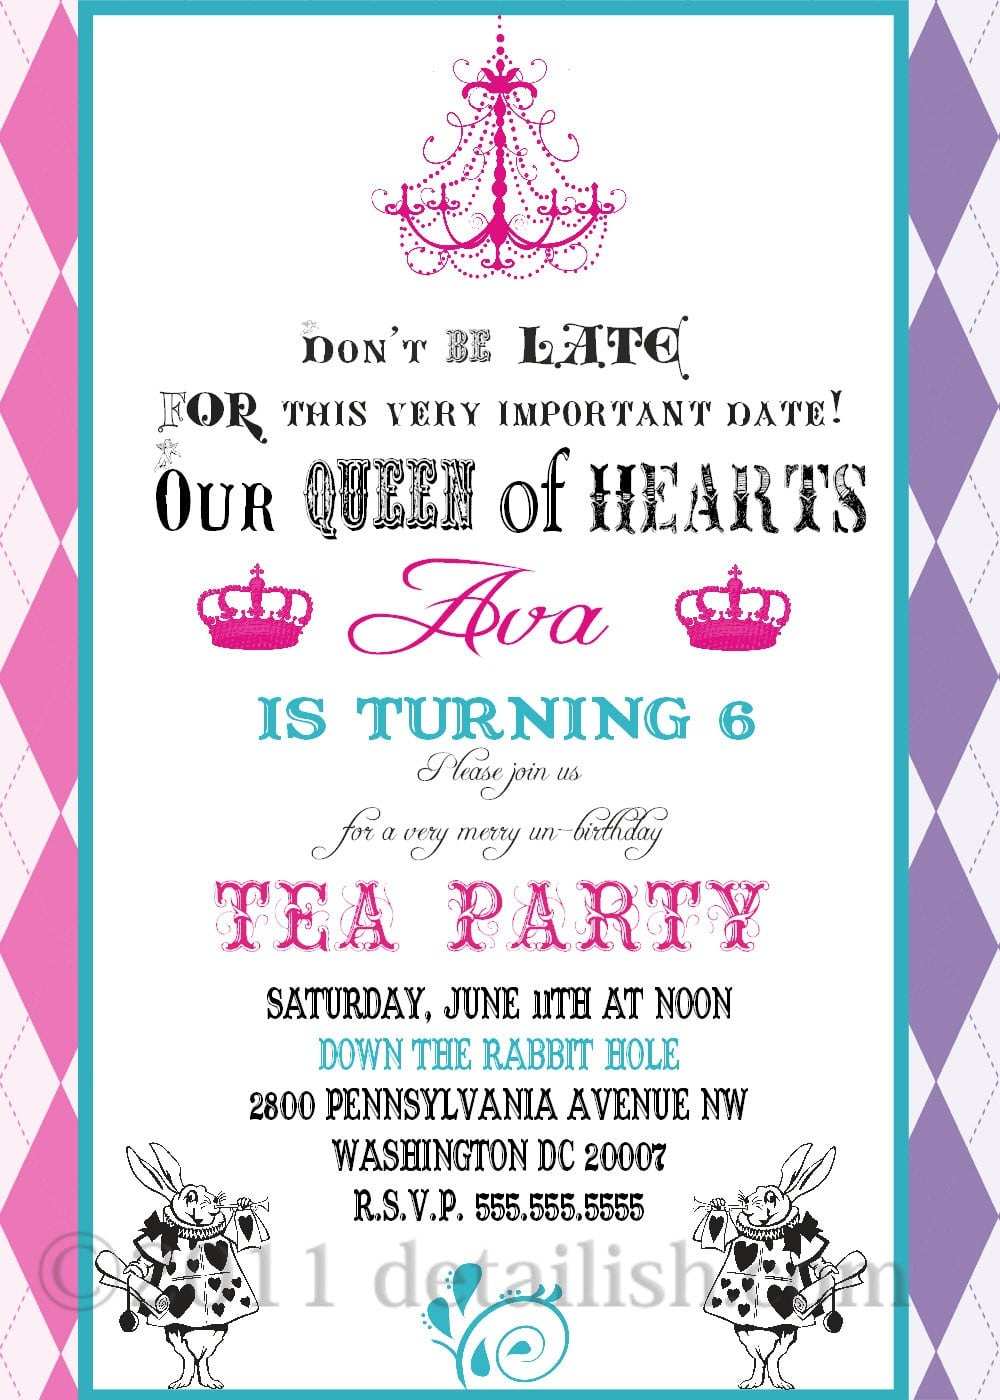 Party Invitations  Simple Invitation Wording For Party  Wonderful